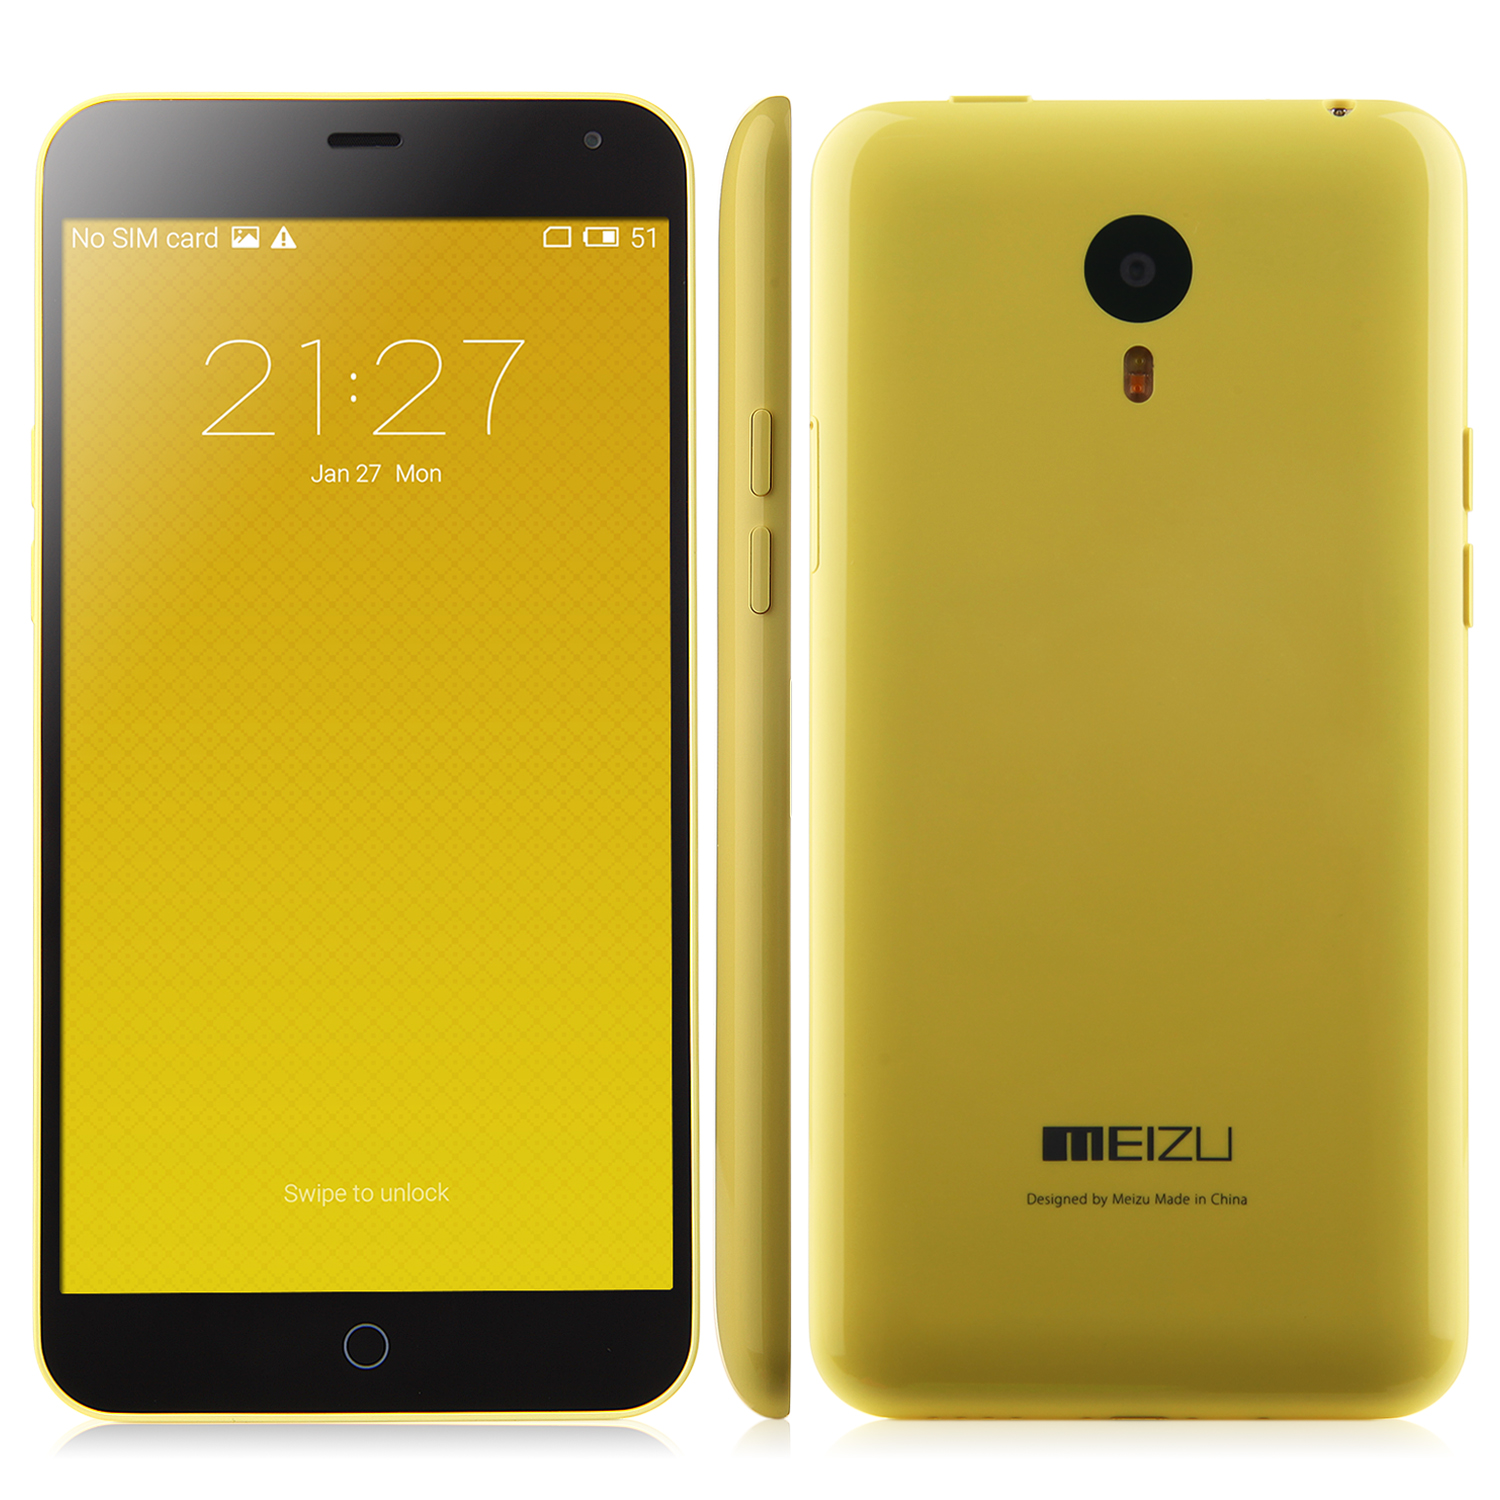 MEIZU m1 note 64bit Octa Core FDD LTE 5.5 Inch Gorilla Glass 2GB 16GB 3140mAh Yellow